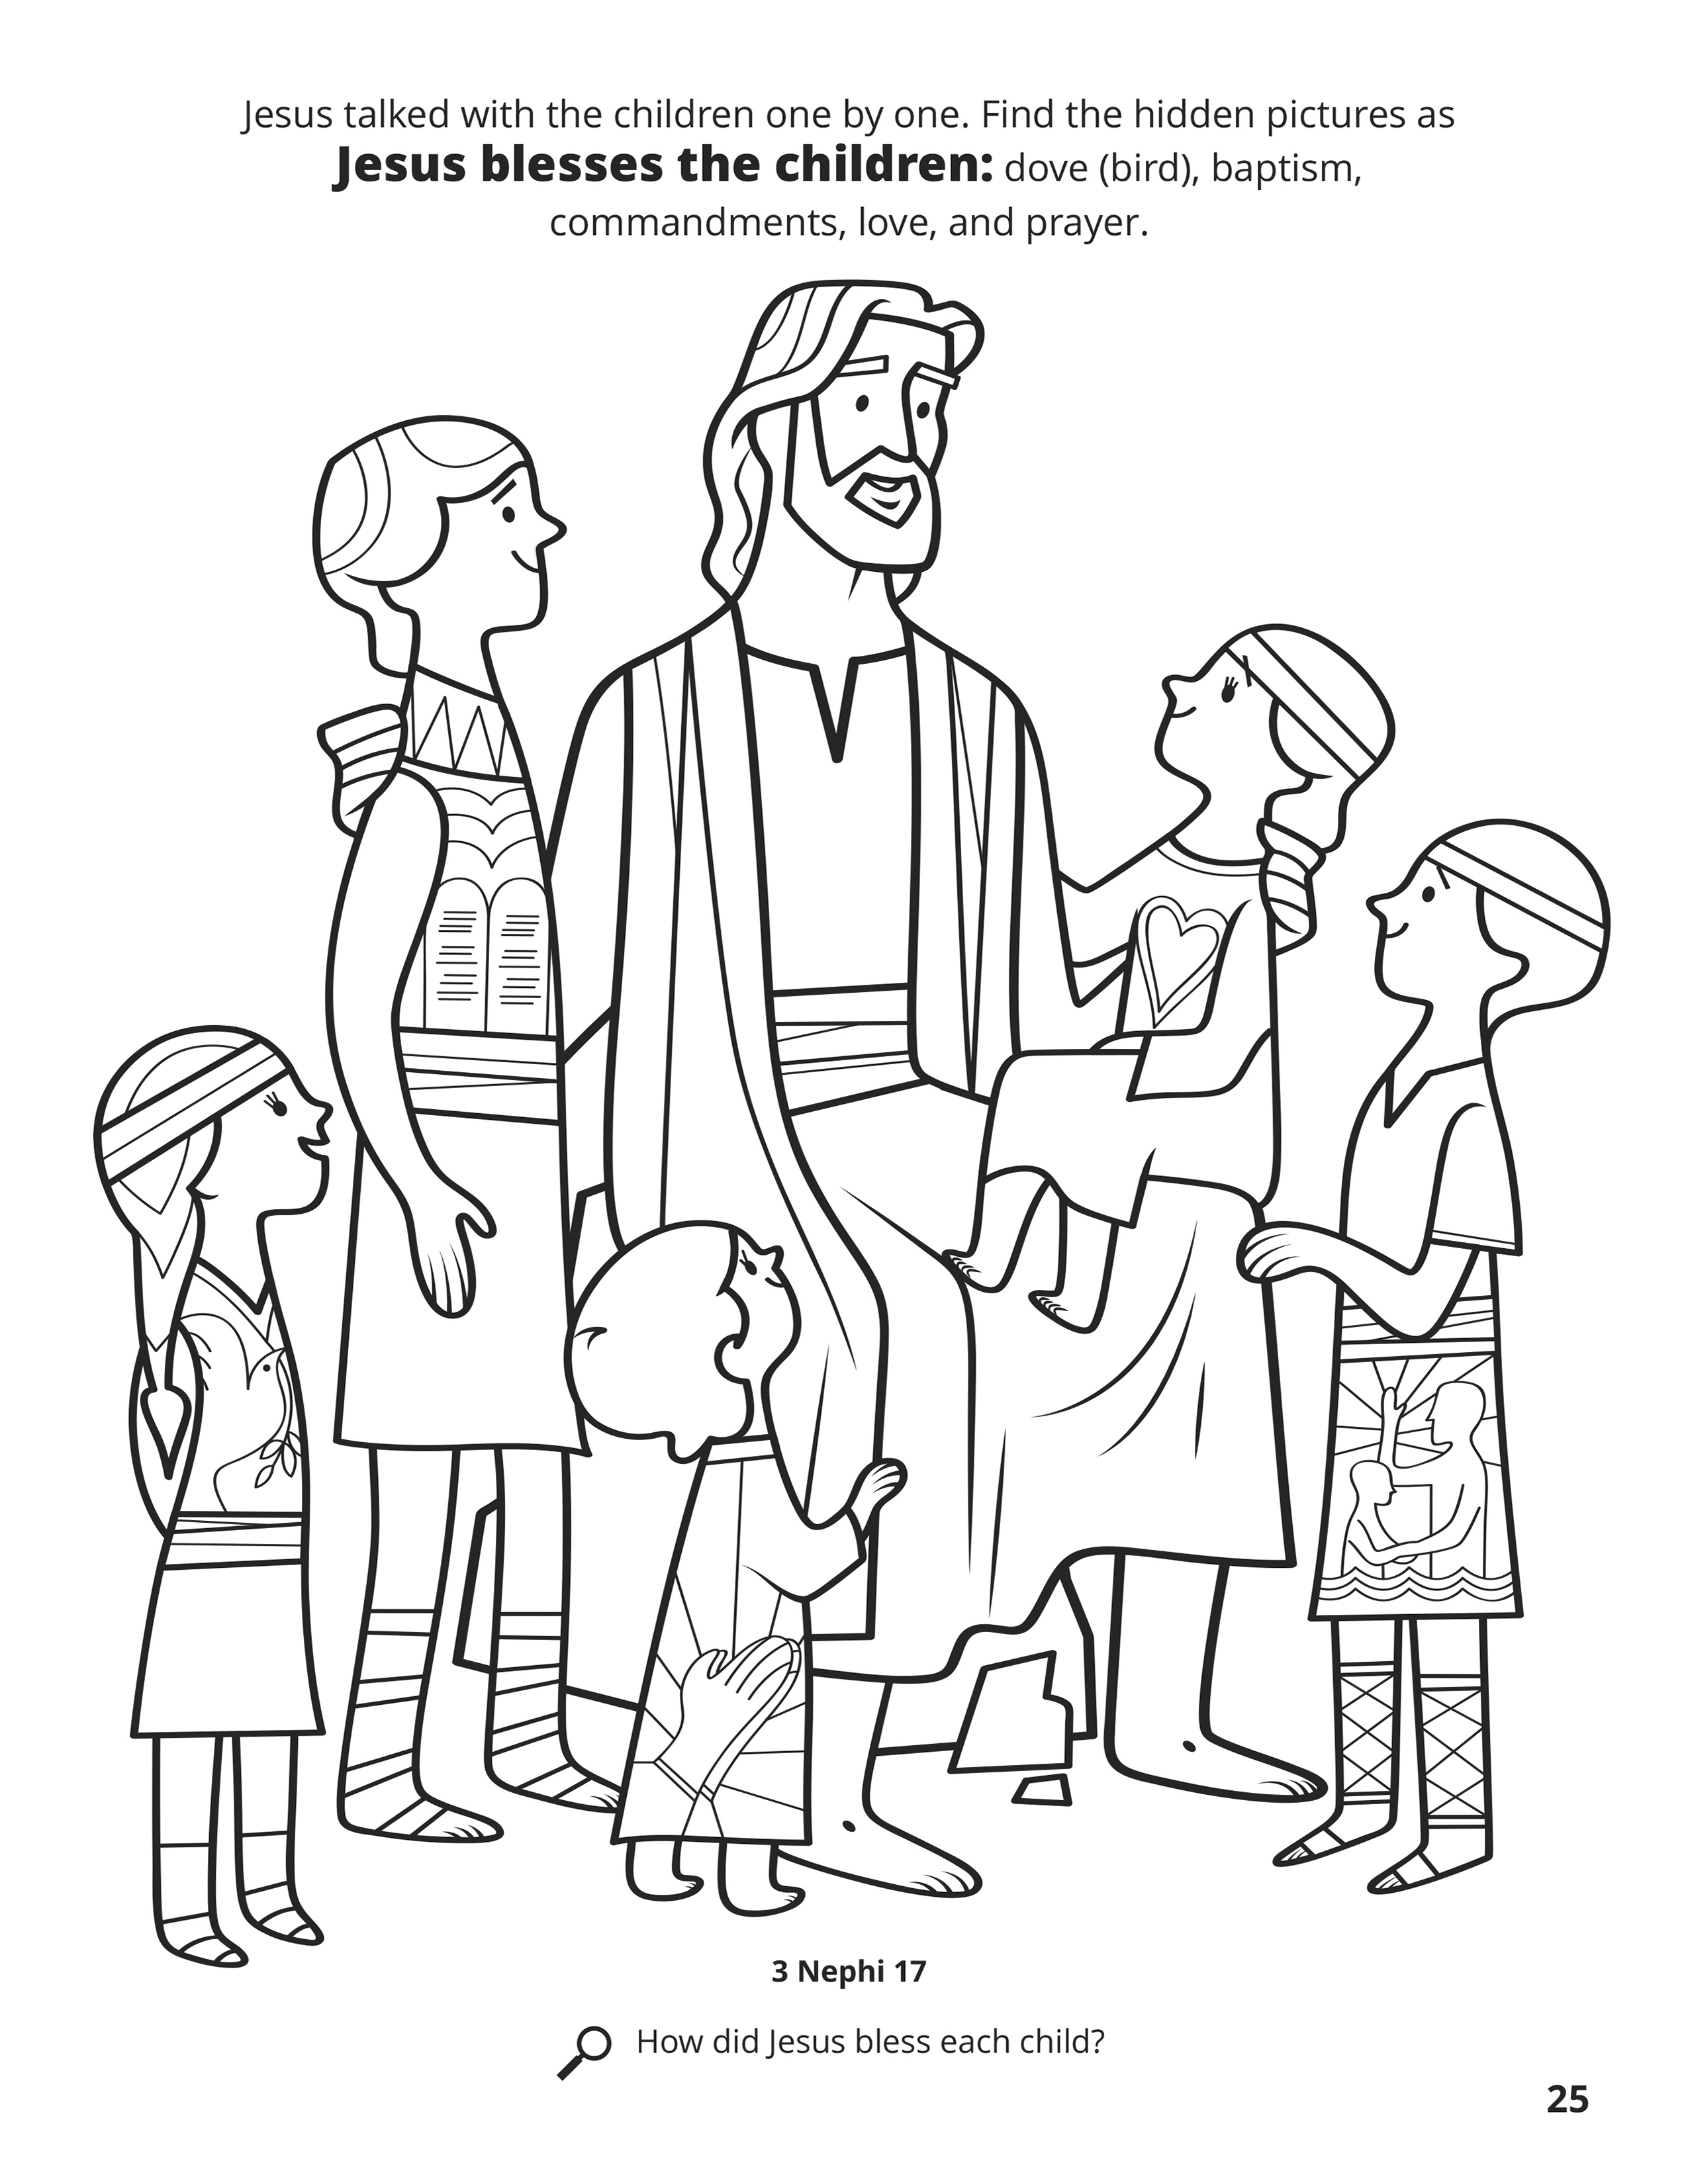 Nephi Coloring Page : nephi, coloring, Jesus, Blesses, Children